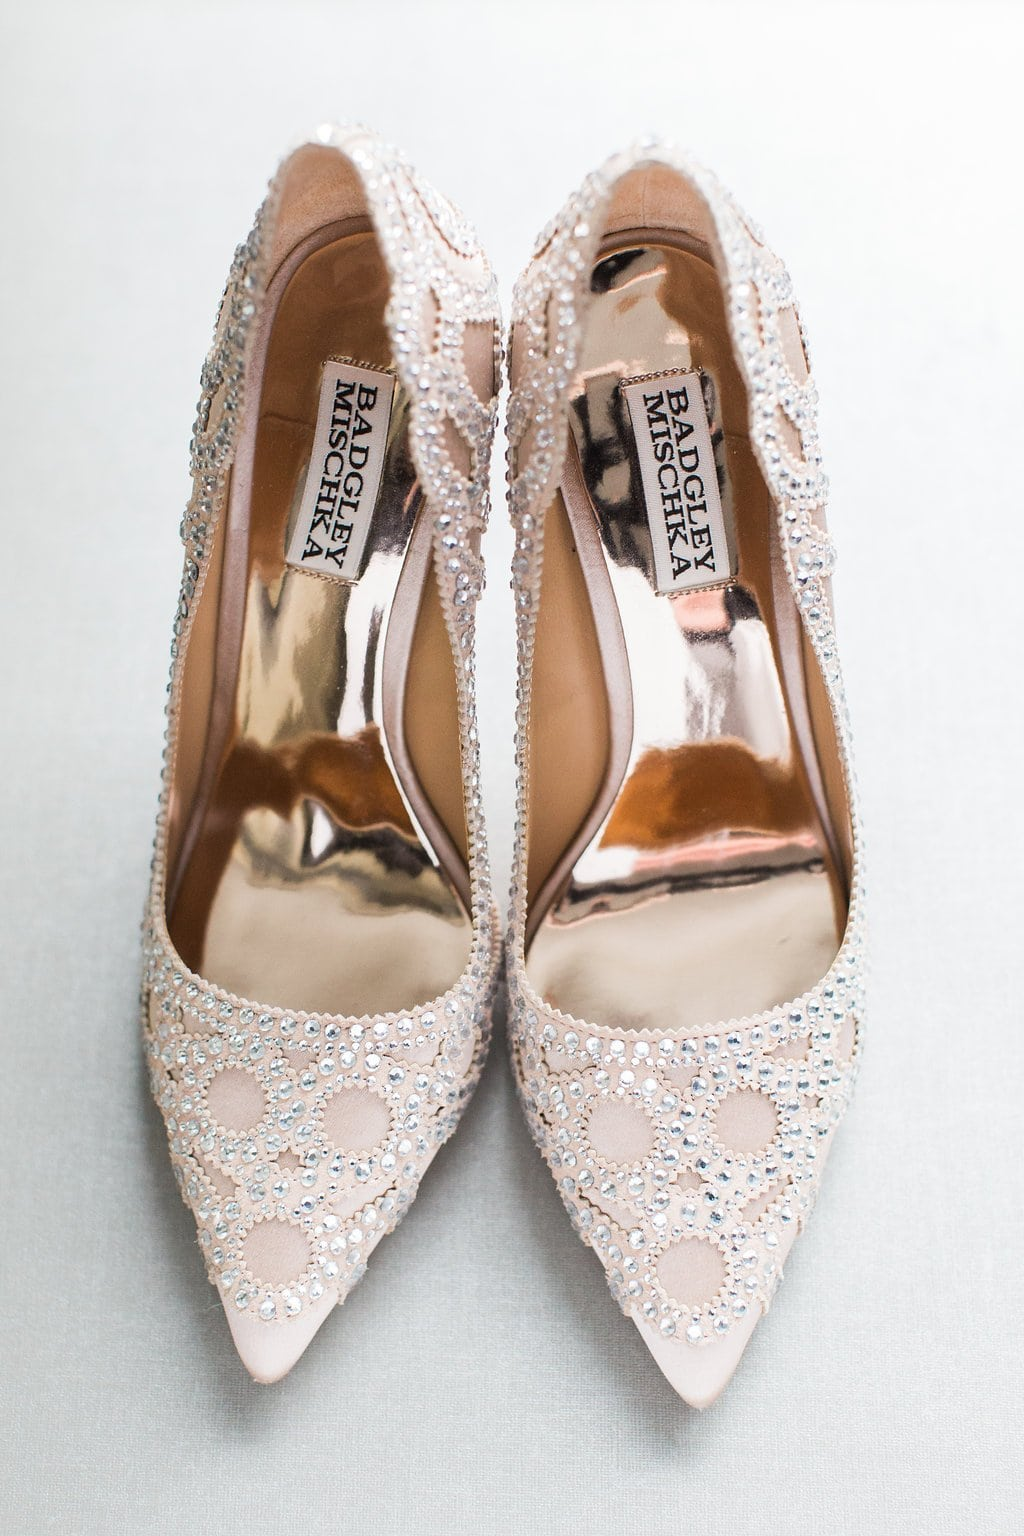 Badgley Mischka bridal shoes photo a the Hyatt place hotel in southside